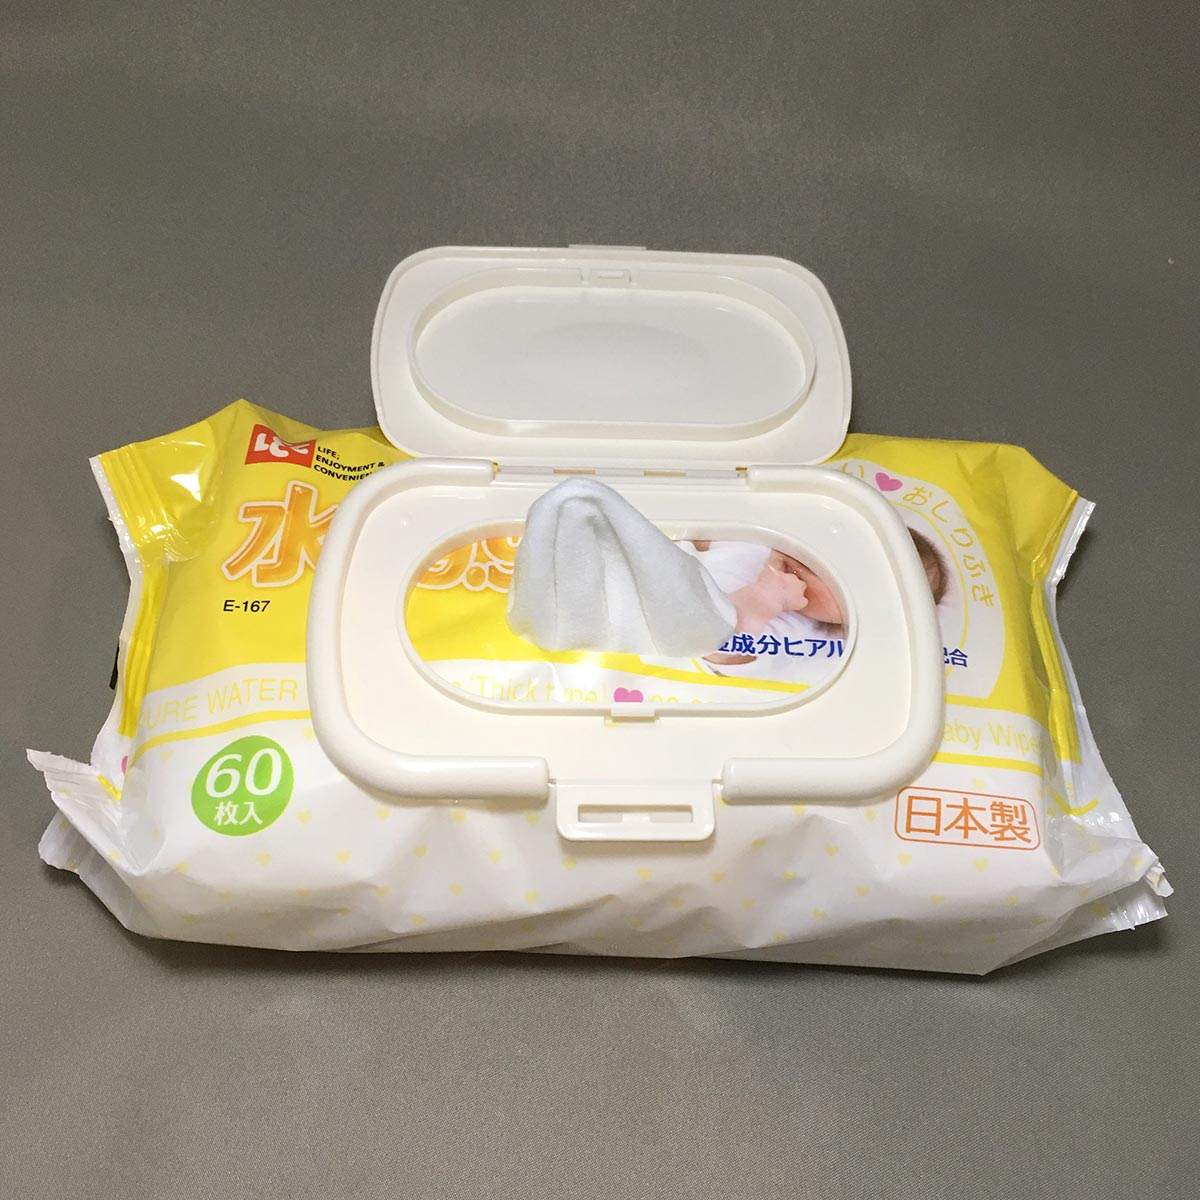 Reusable Baby Wipes Lid - lid on wipes opened